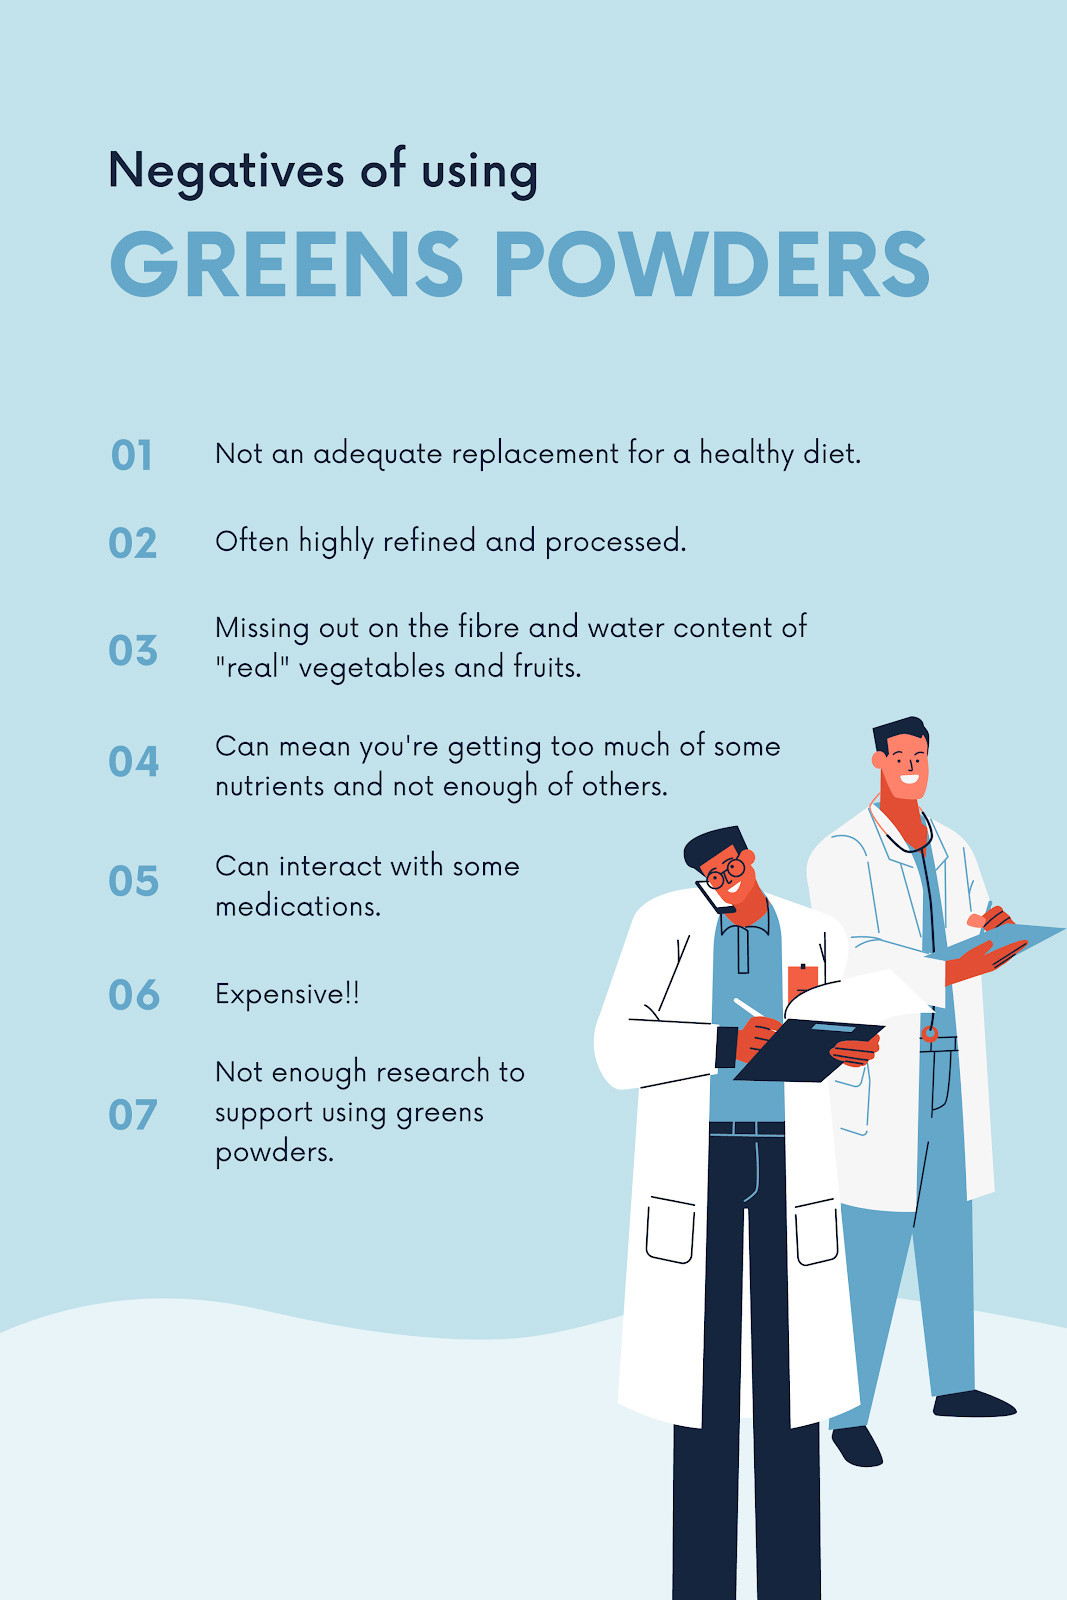 Disadvantages of greens powder supplements